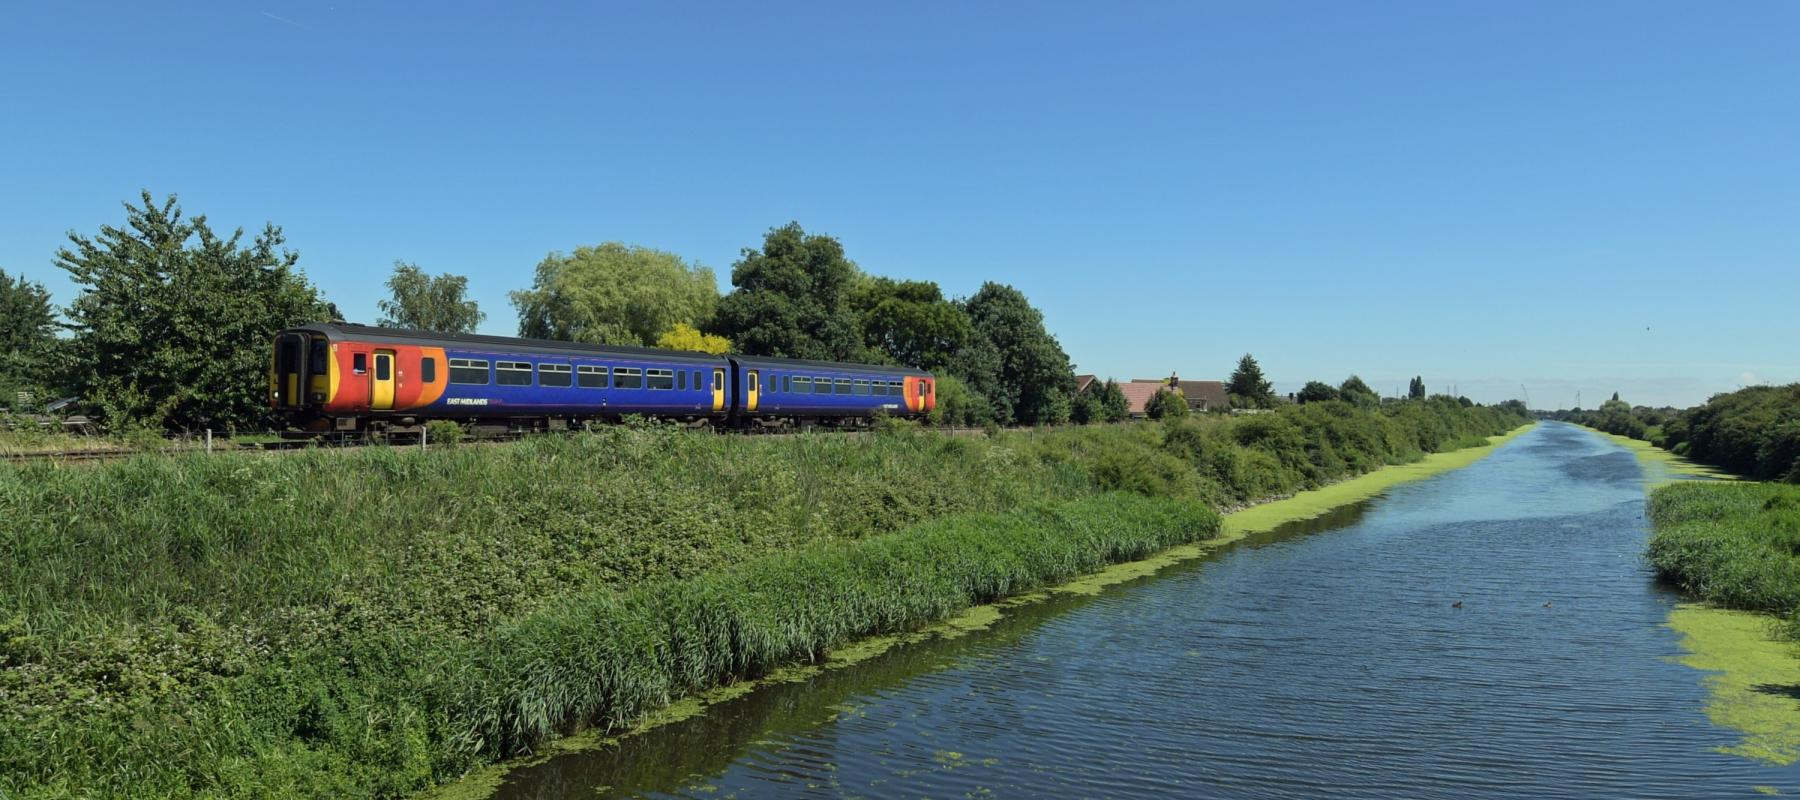 East Midlands train travelling along the Poacher line